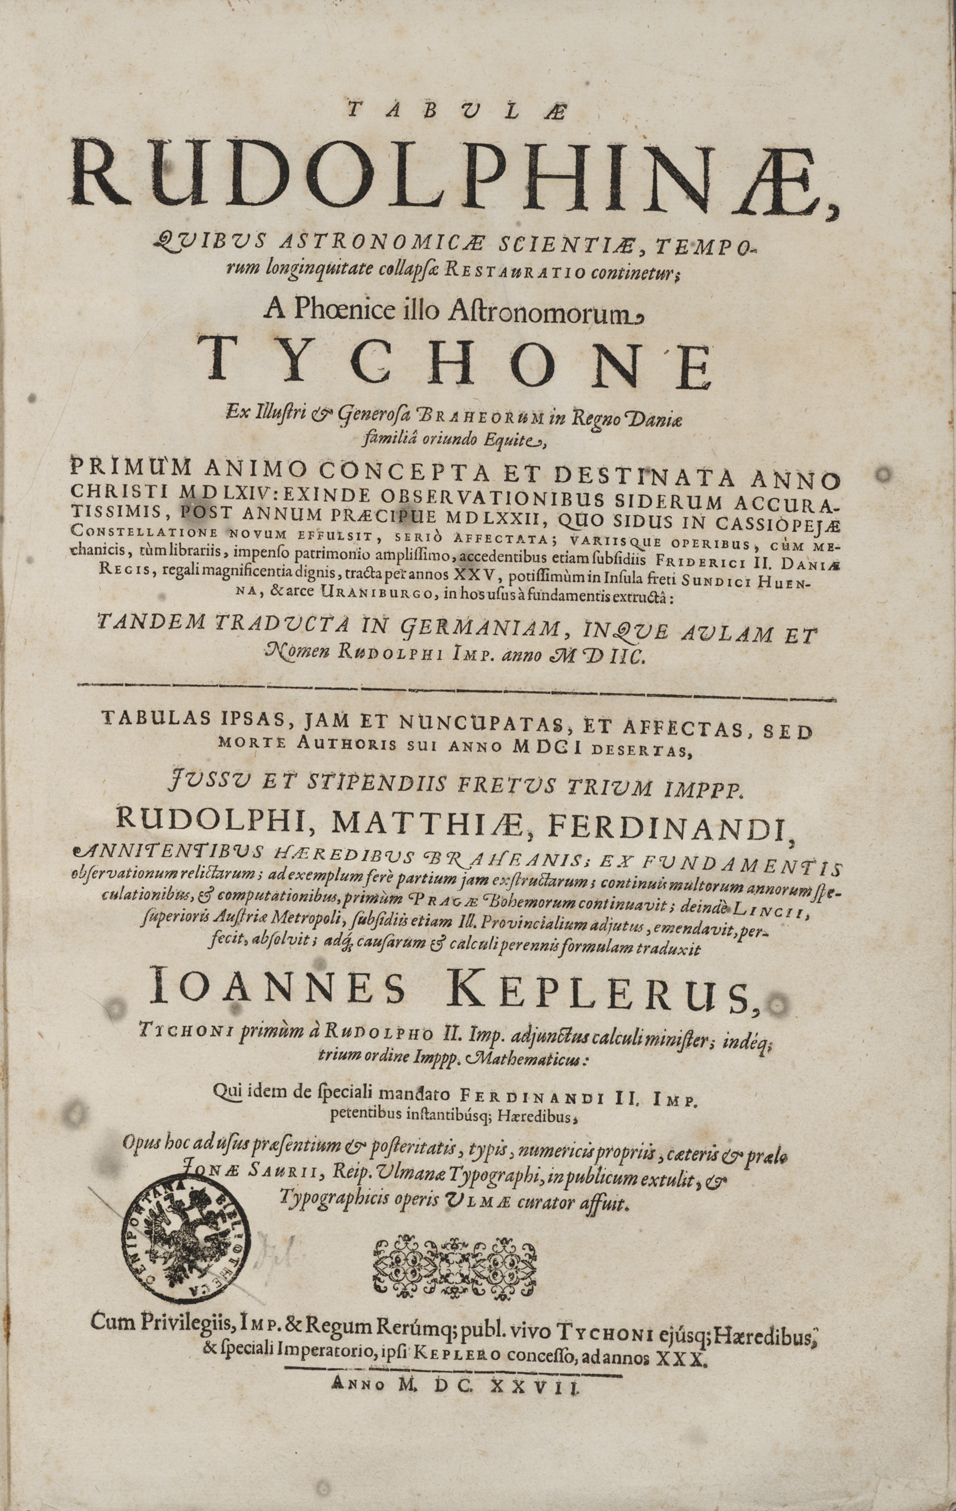 Title page of the Tabulae Rudolphinae, Ulm, 1627